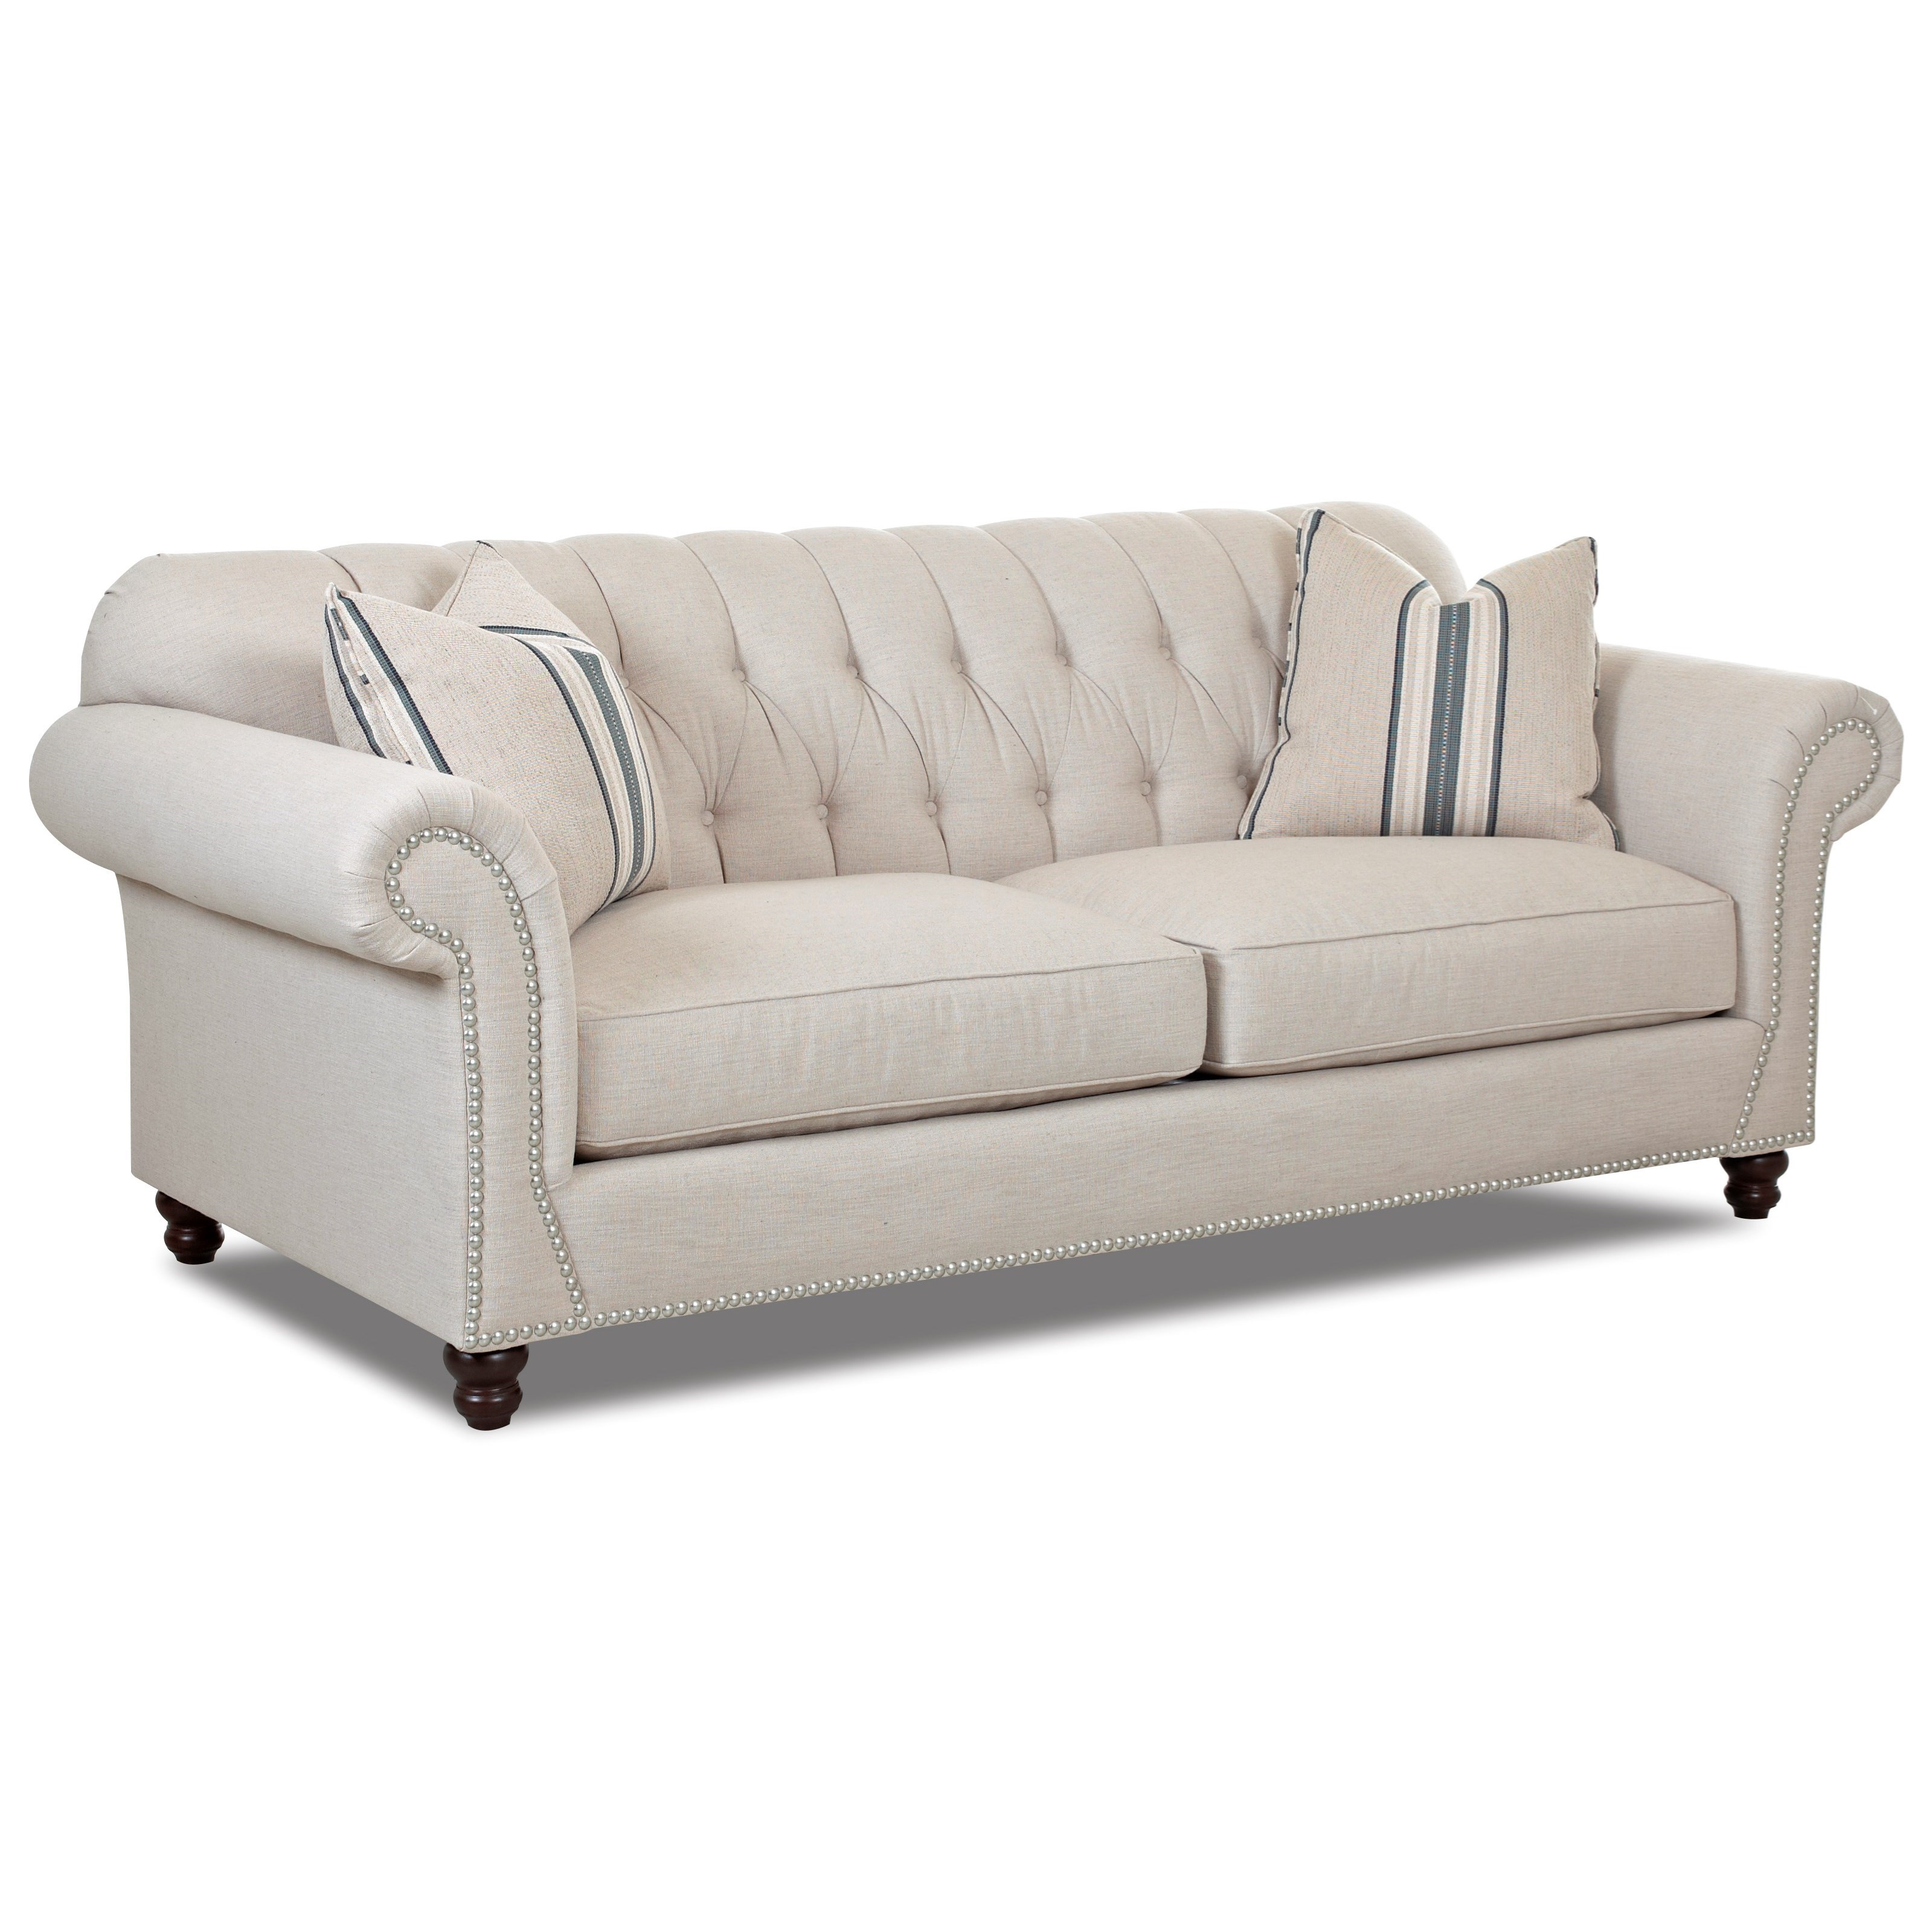 Klaussner Flynn Traditional Sofa with Button Tufted Back, Rolled Arms and Throw Pillows Johnny ...